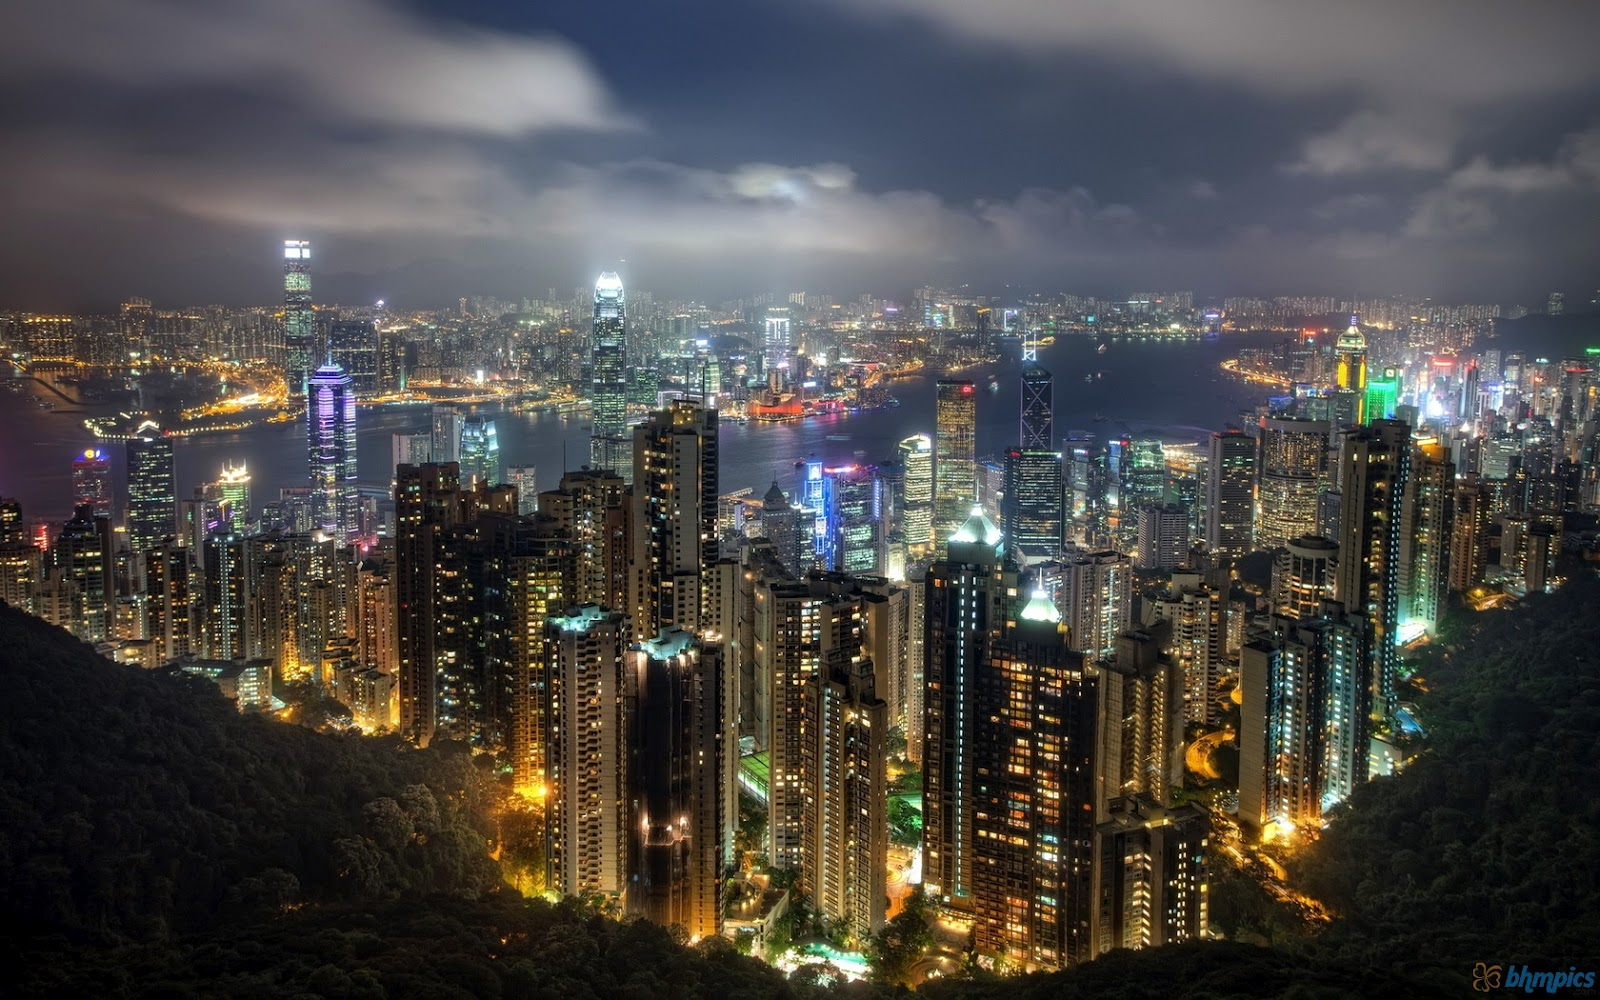 http://3.bp.blogspot.com/-OUycKGhqYxI/UFQwwvzK1JI/AAAAAAAAD7U/ef0-r1sTAgs/s1600/beautiful_hong_kong_night_sky-1680x1050.jpg